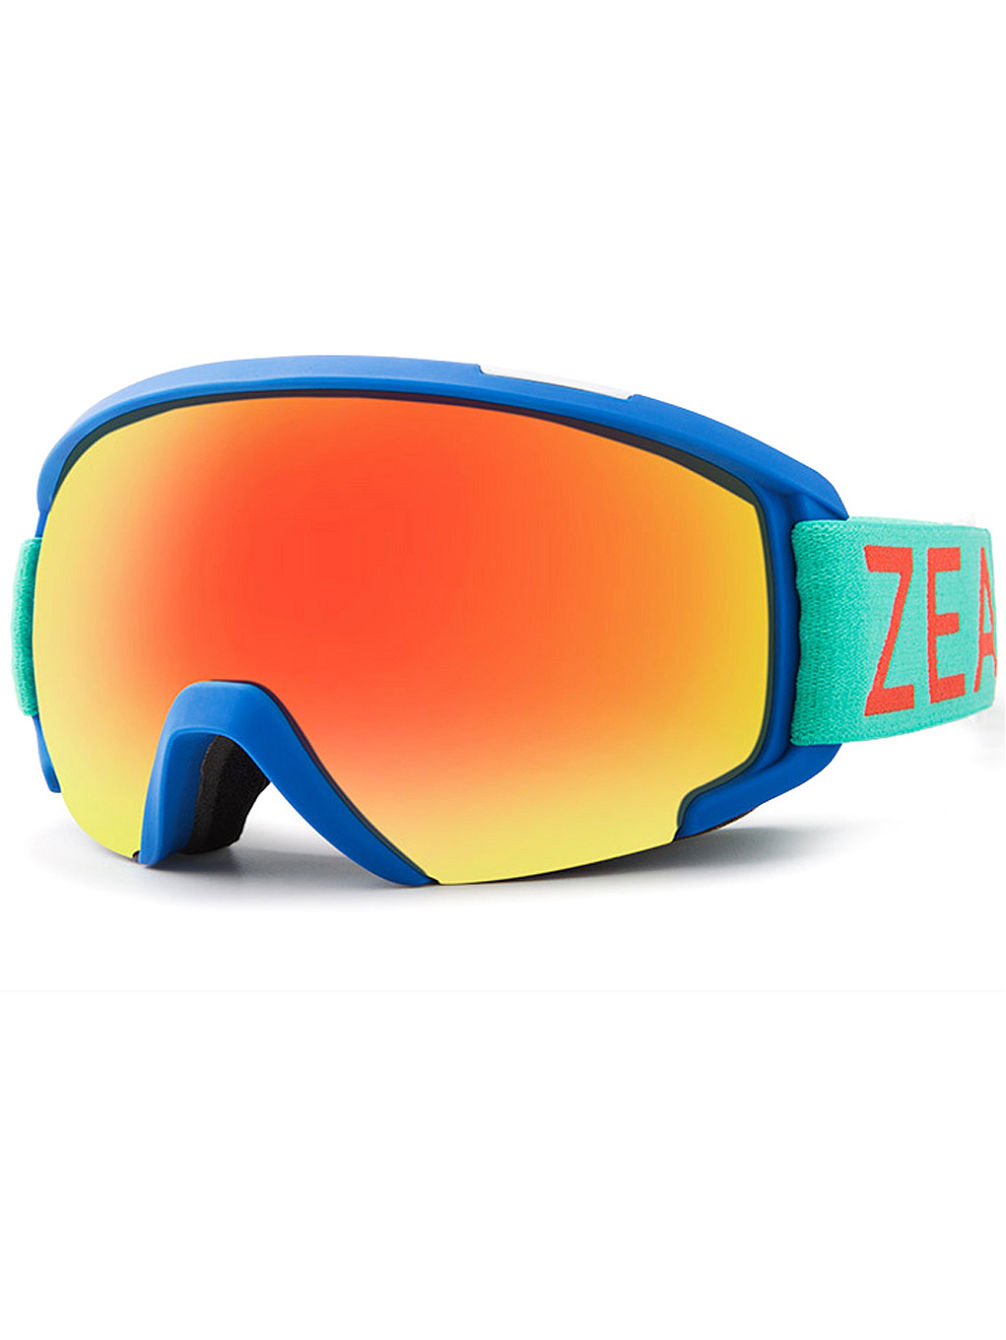 zeal-optics-slate-kingfisher-blue